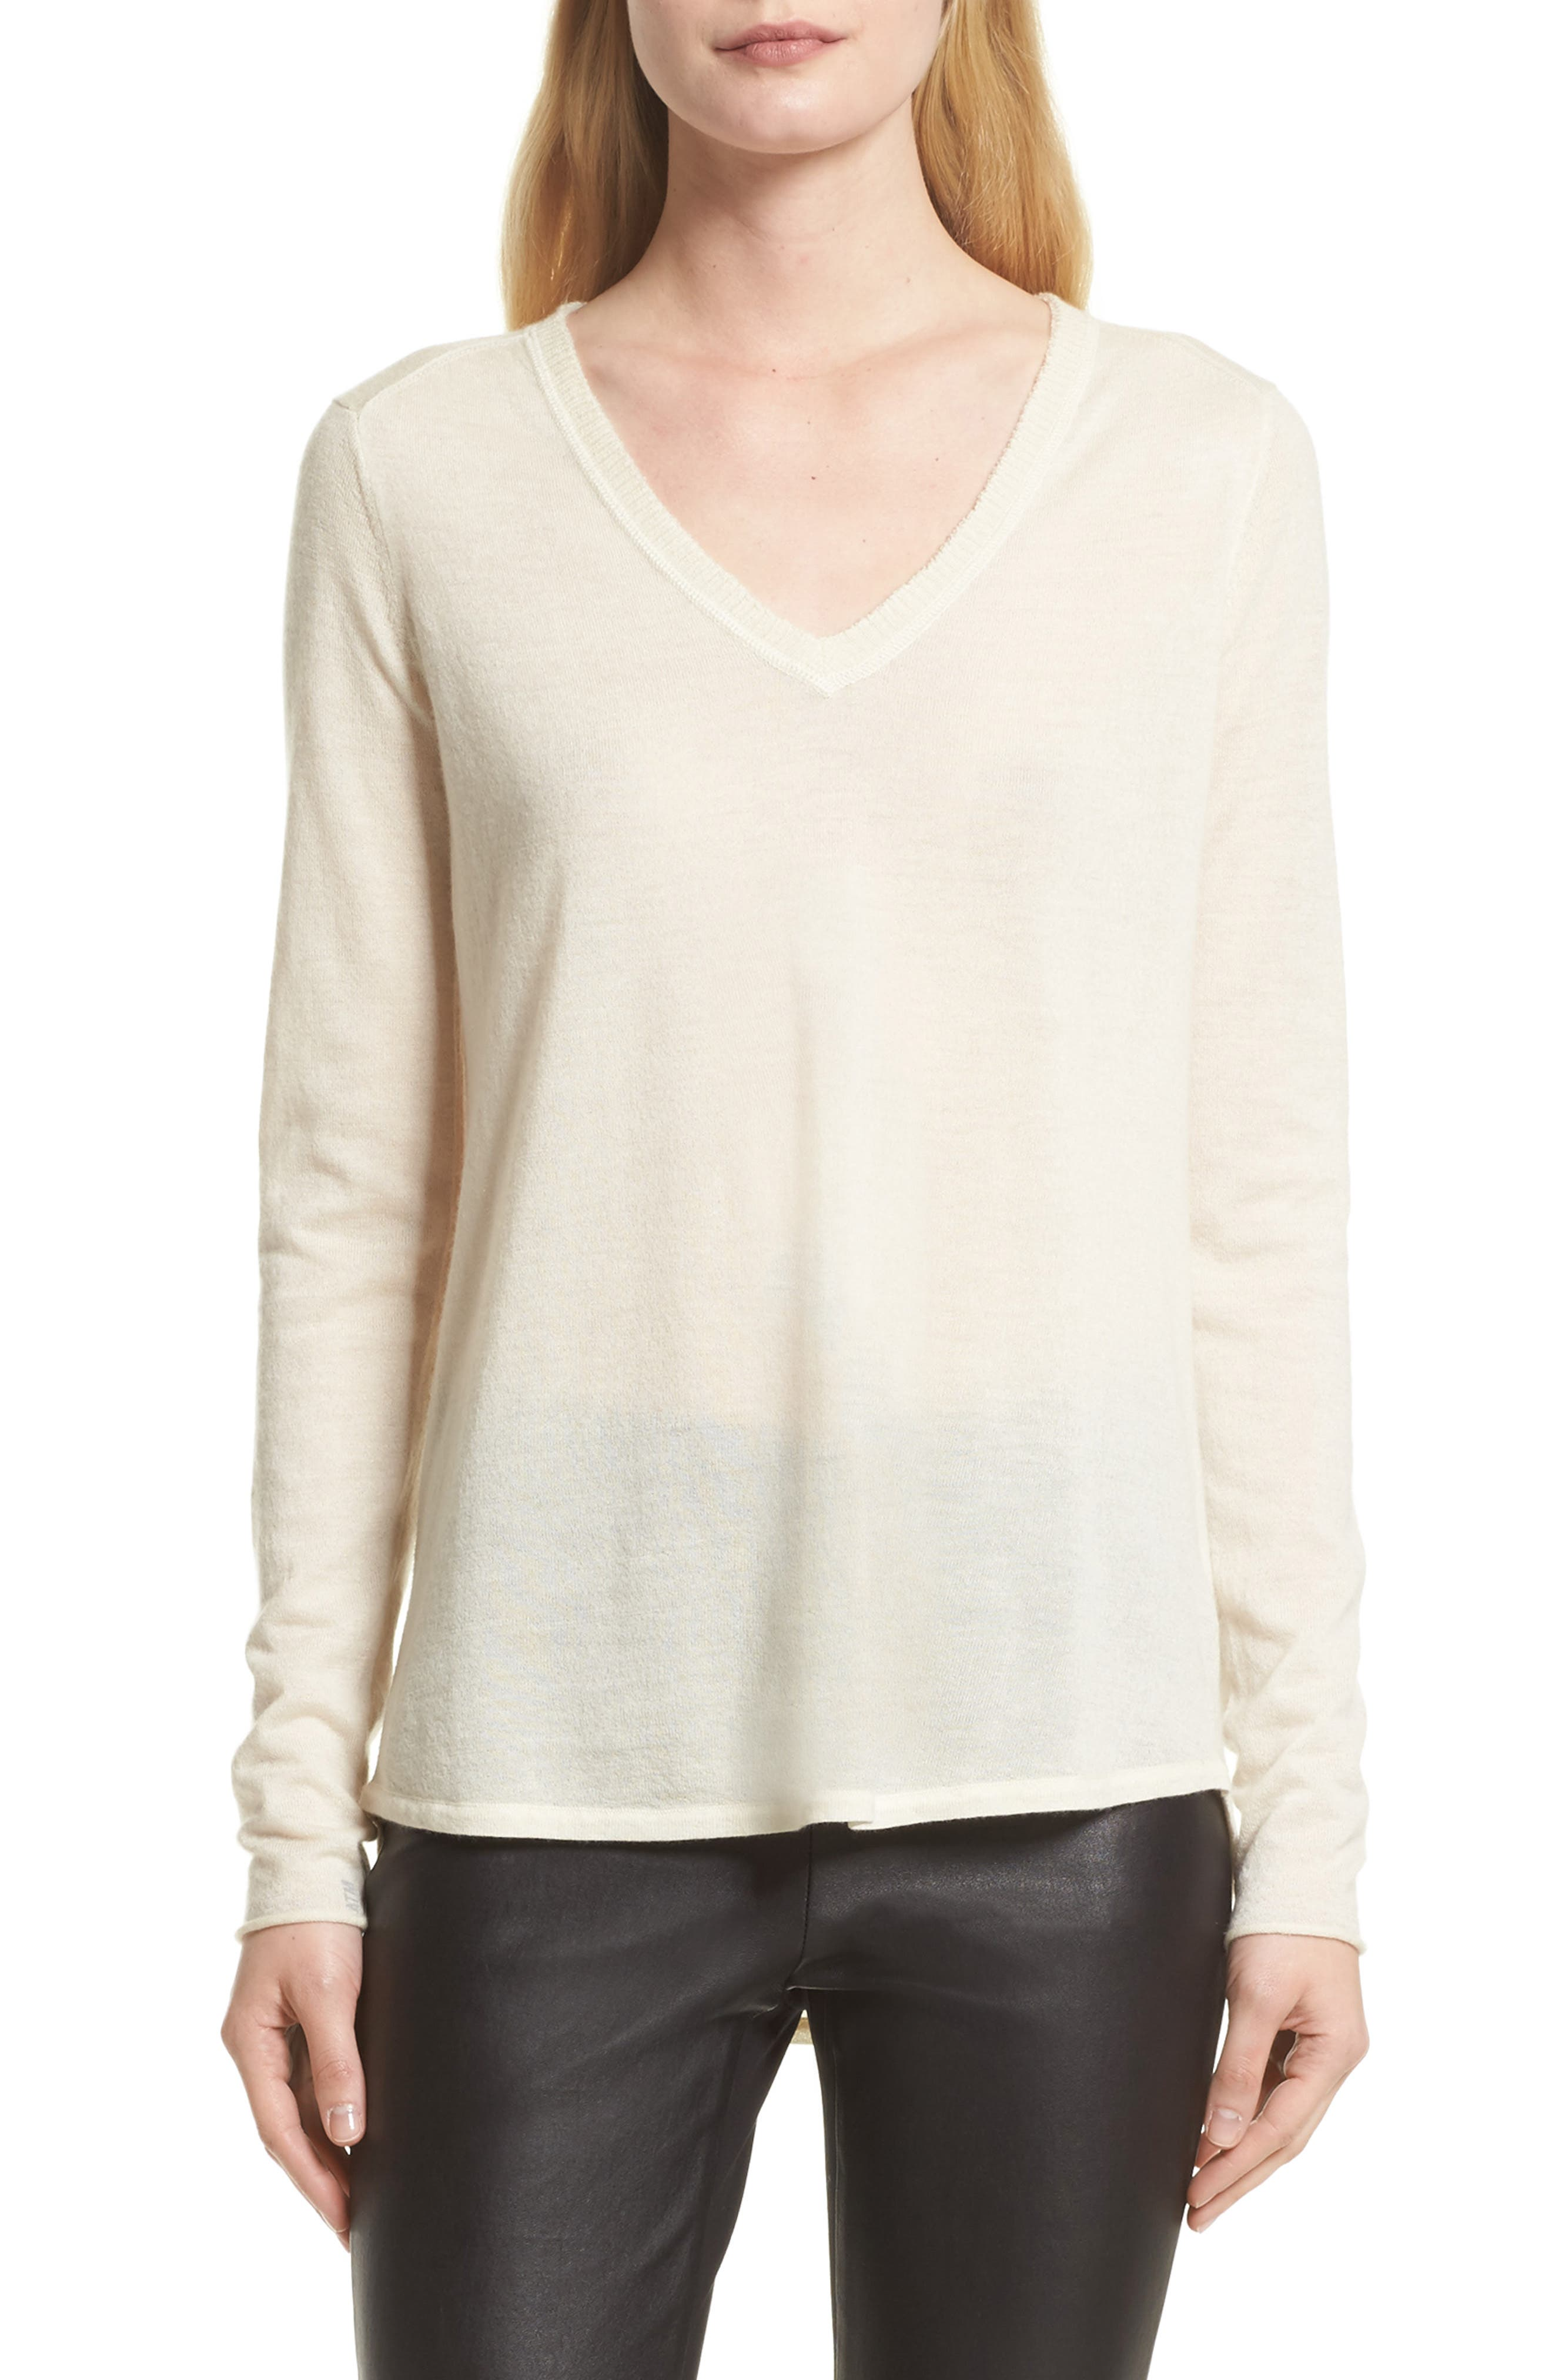 Alternate Image 1 Selected - ATM Anthony Thomas Melillo Raw Edge Cashmere Sweater (Nordstrom Exclusive)